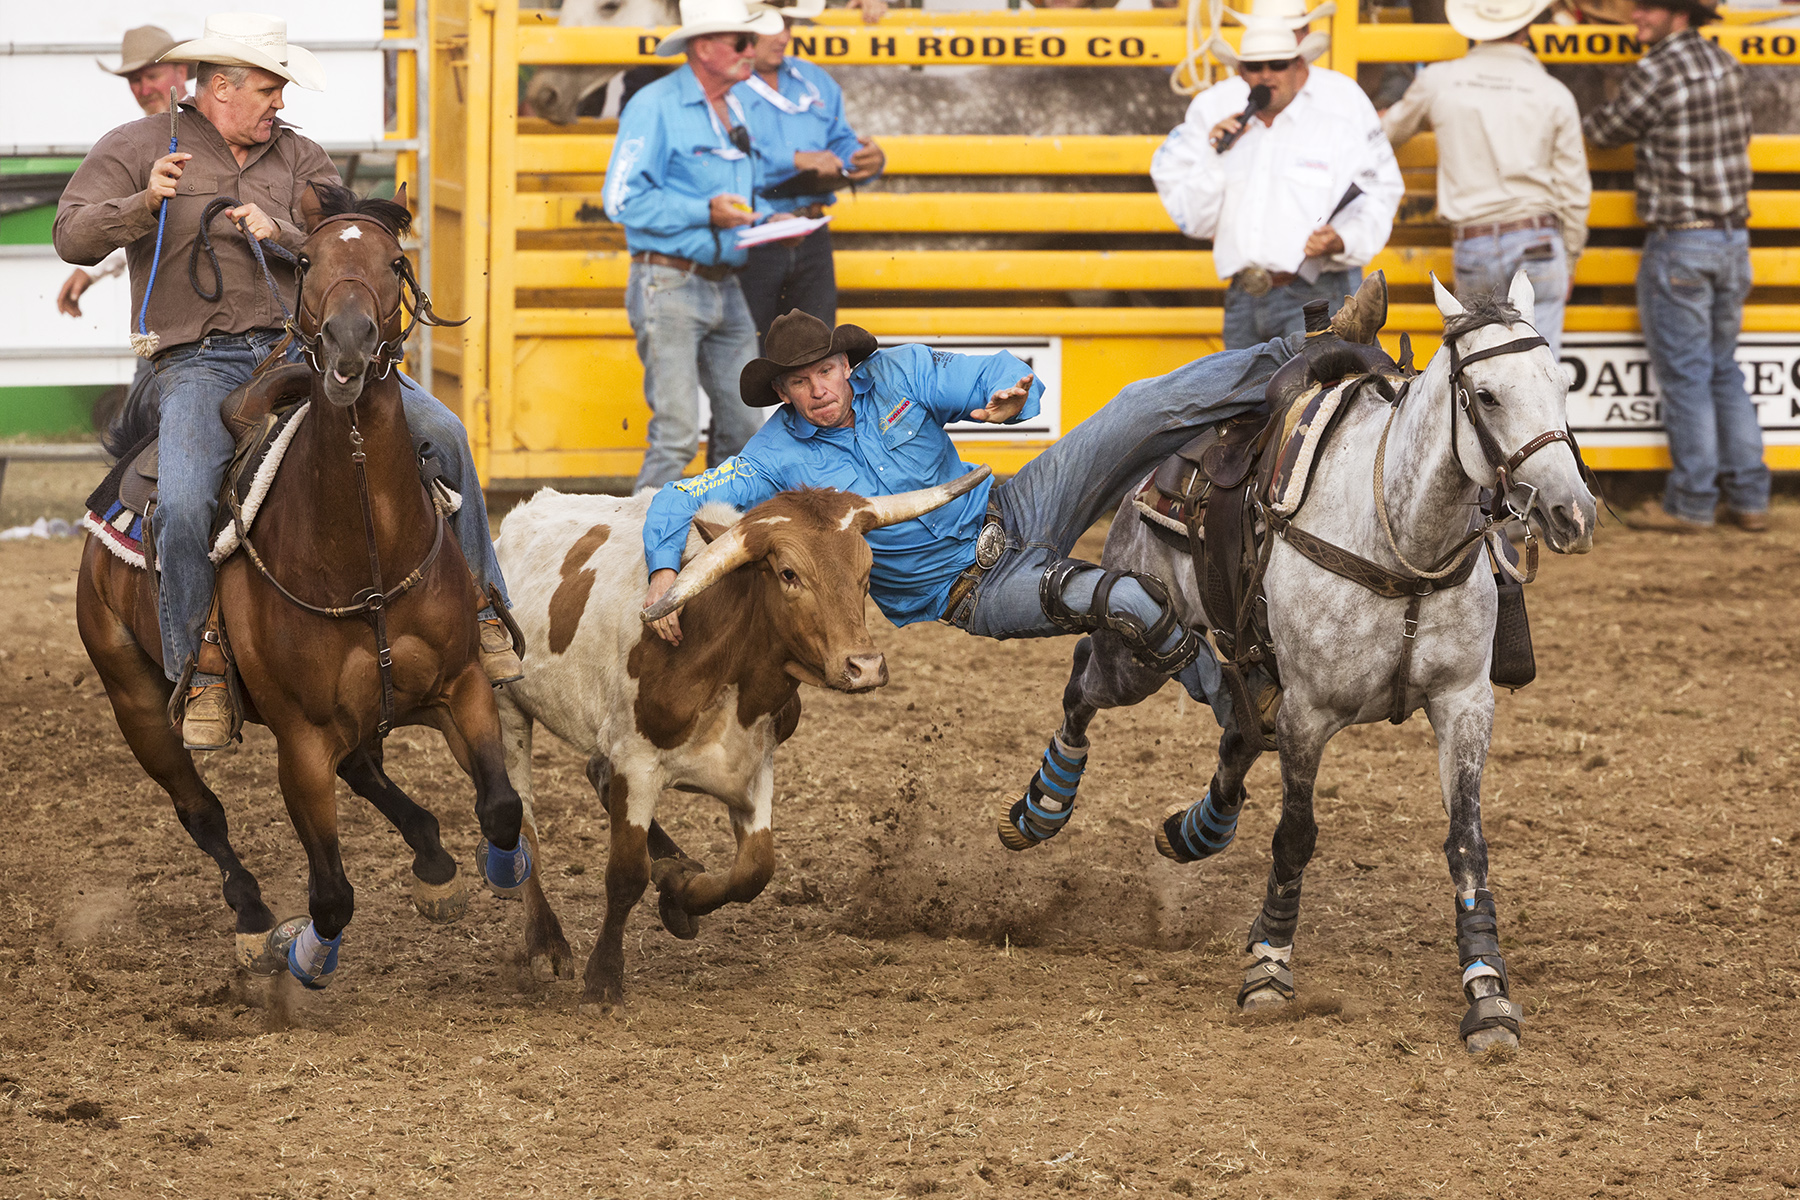 Brian_Jones_Steer Wrestling.jpg